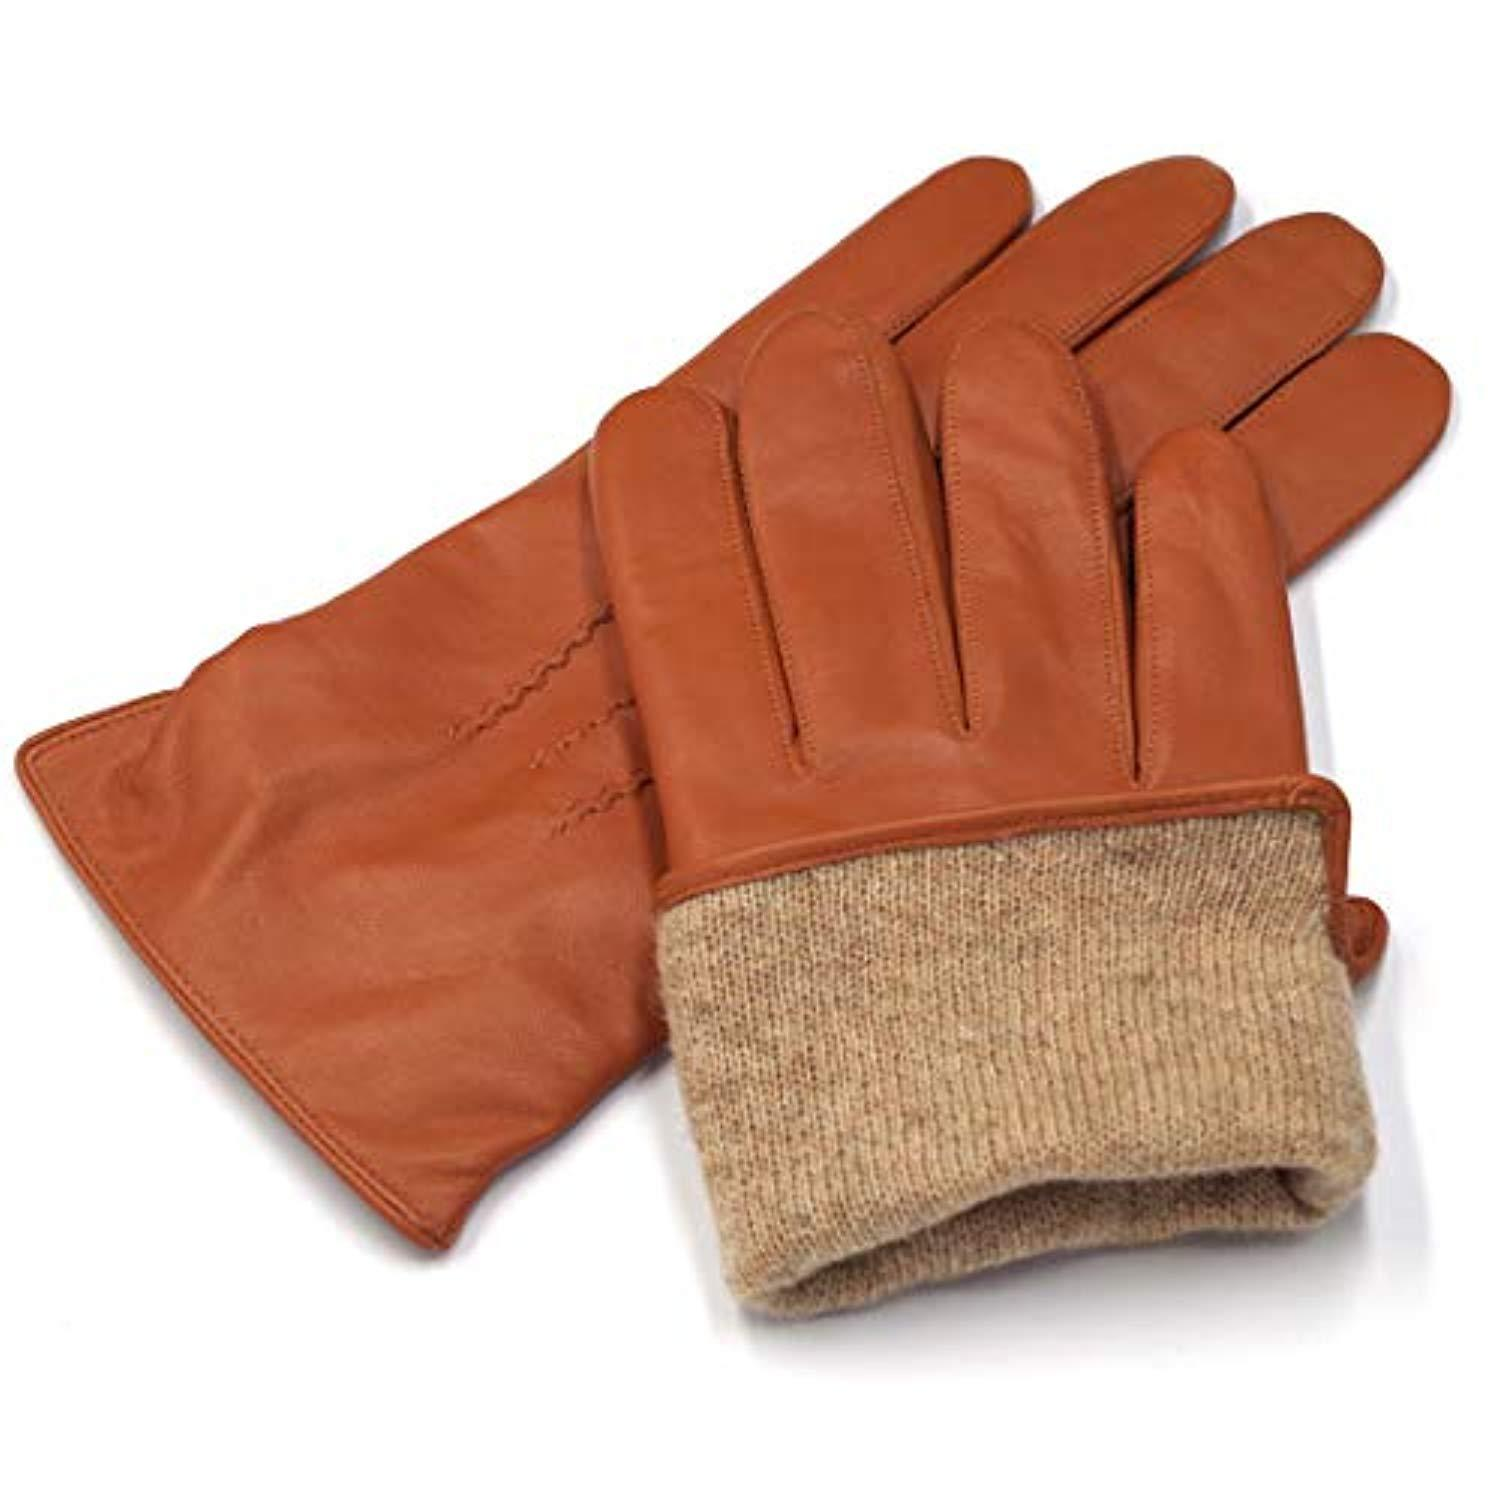 Harssidanzar Mens Luxury Italian Leather Gloves Vintage Finished Wool Lined